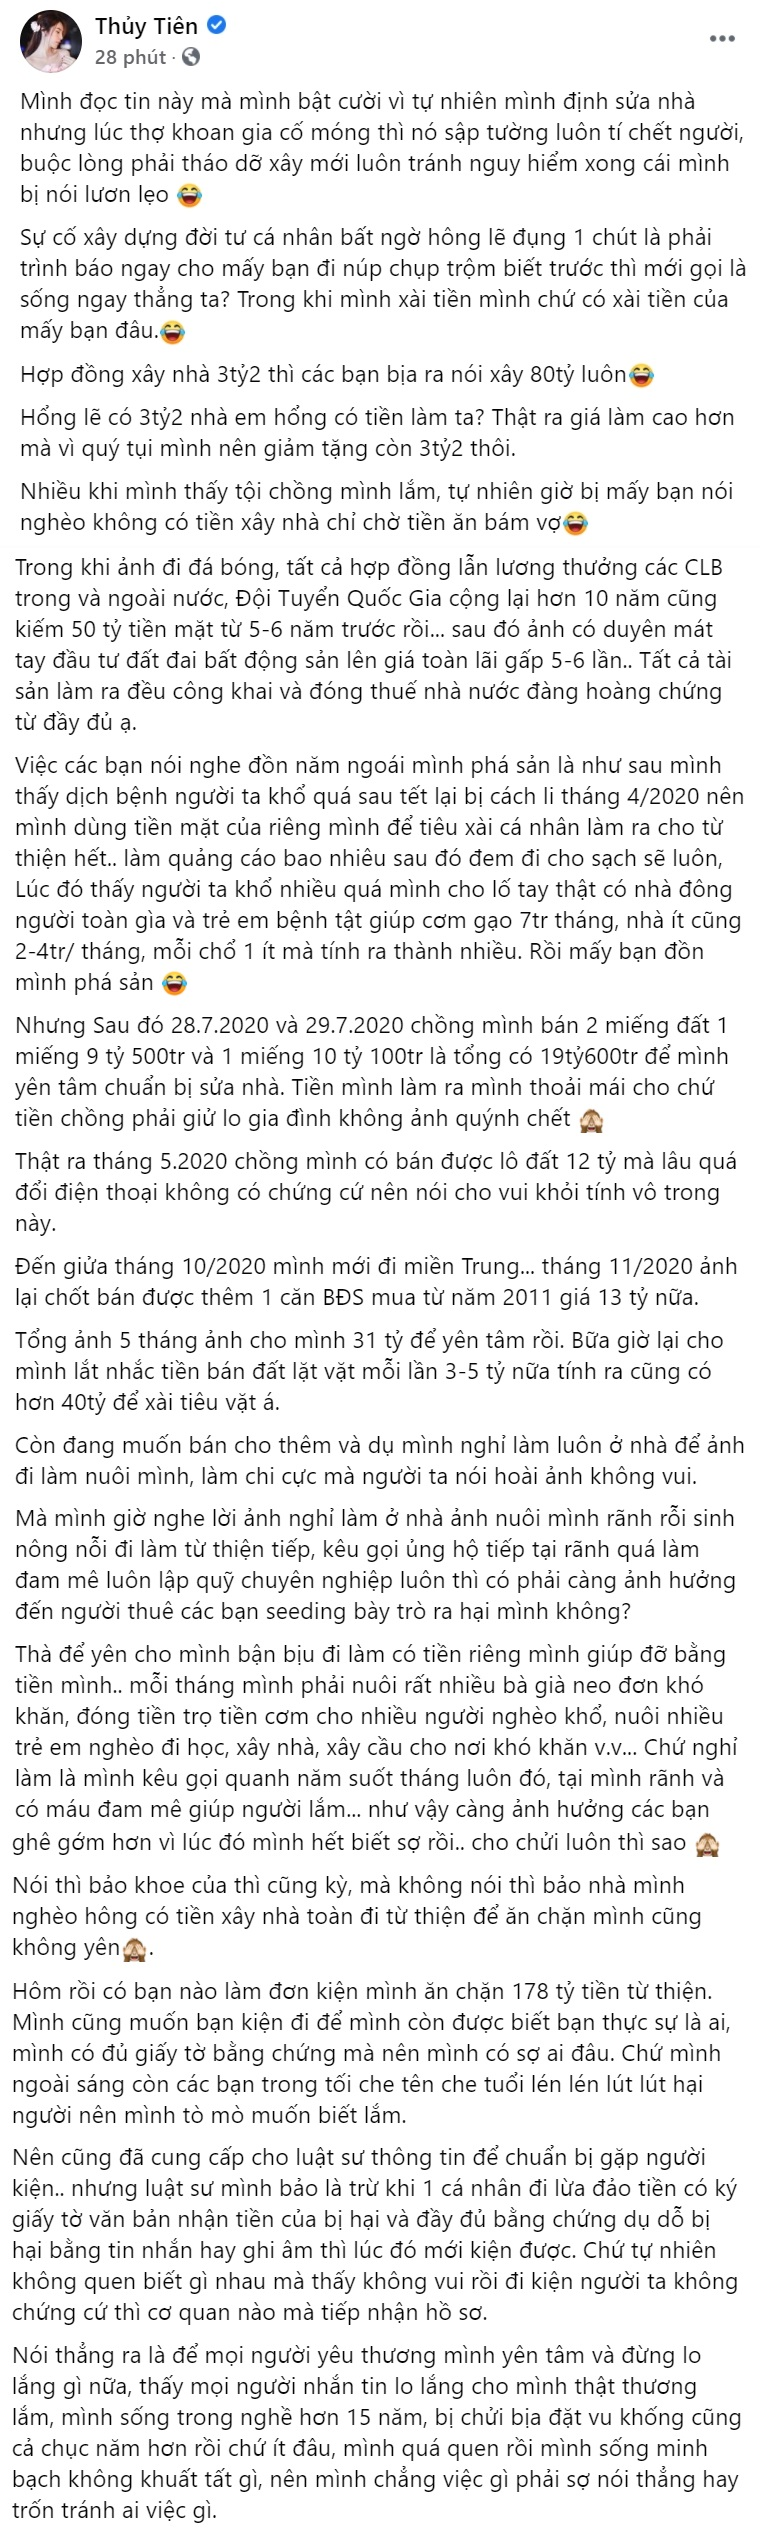 Thuy Tien speaks out against the suspicion of building a villa, showing off her real estate business with more than 40 billion pocket money